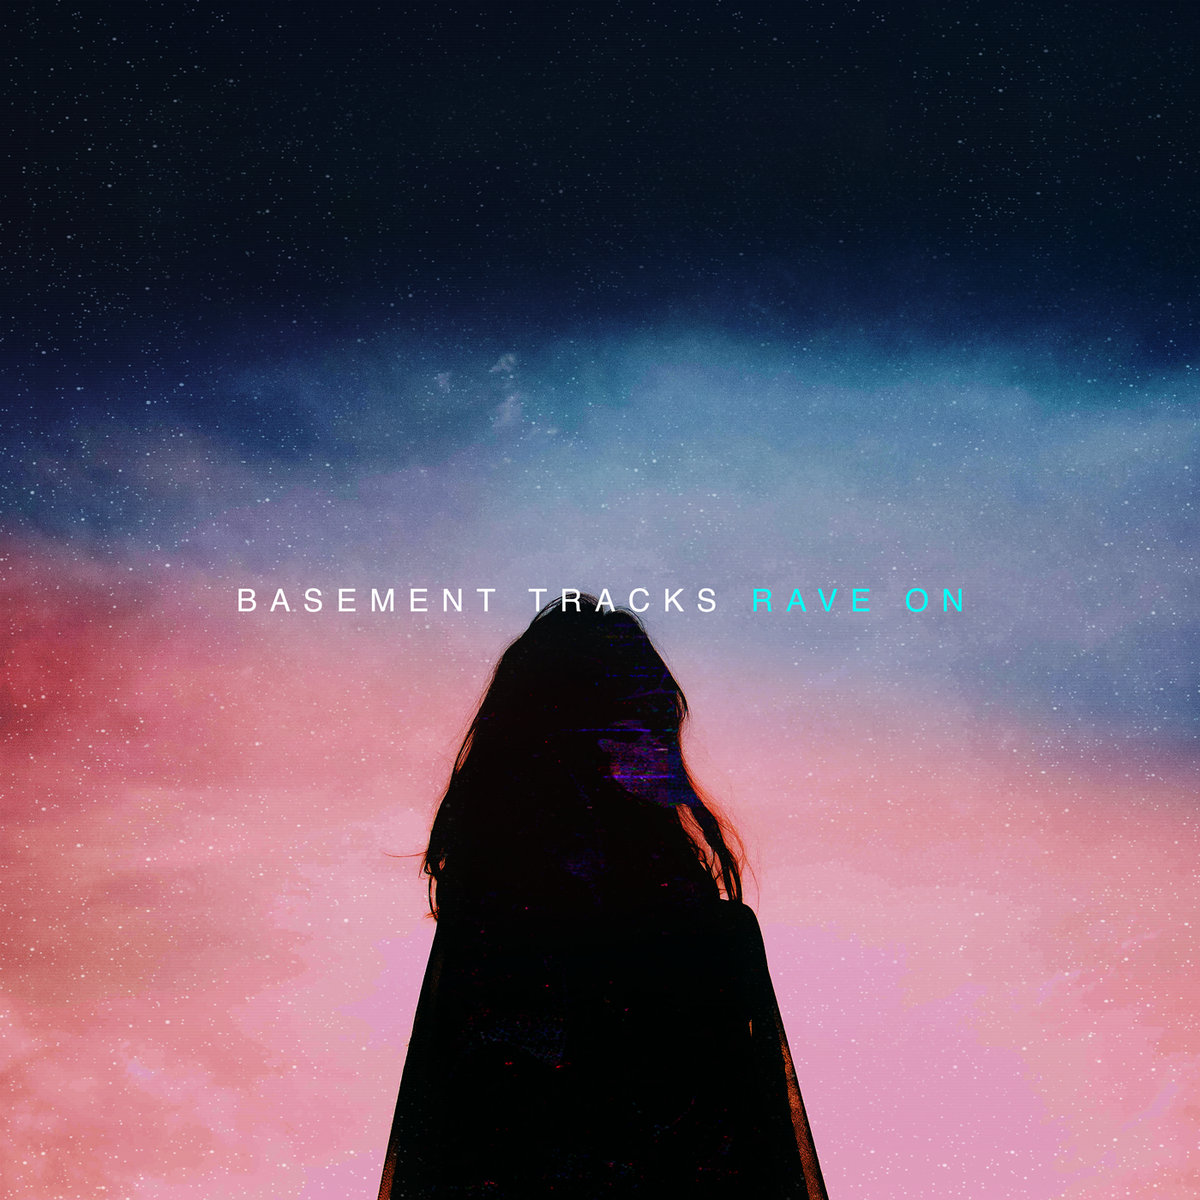 Basement Tracks - Rave On